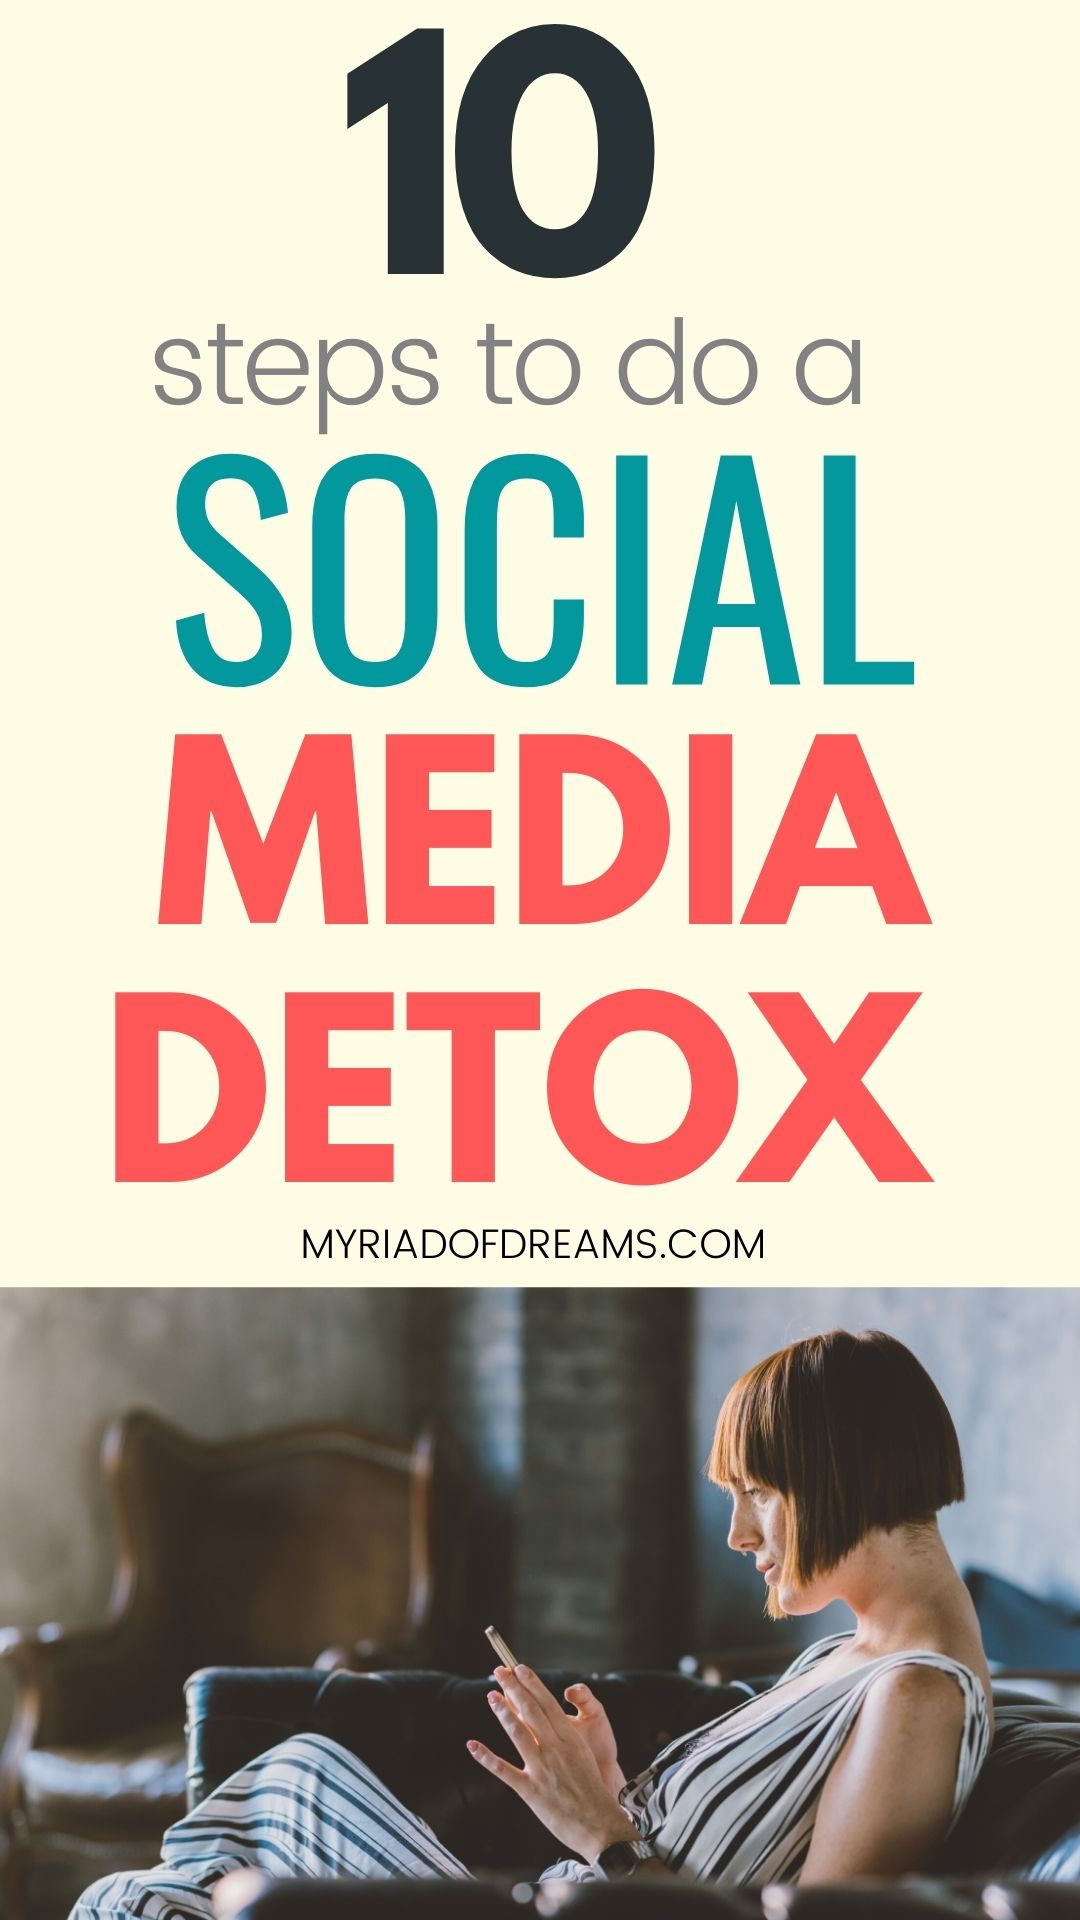 Social media detox tips that will help you reduce your screen time.  A digital detox doesn't necessarily means quitting social media. Learn to take a break from social media and take care of your mental health, digital detox ideas, how to unplug and do a social media cleanse. Live a healthy lifestyle, social media break, personal development, self improvement, personal growth, self care #digitaldetox #socialmedia #detox #personalgrowth #selfimprovement #wellness